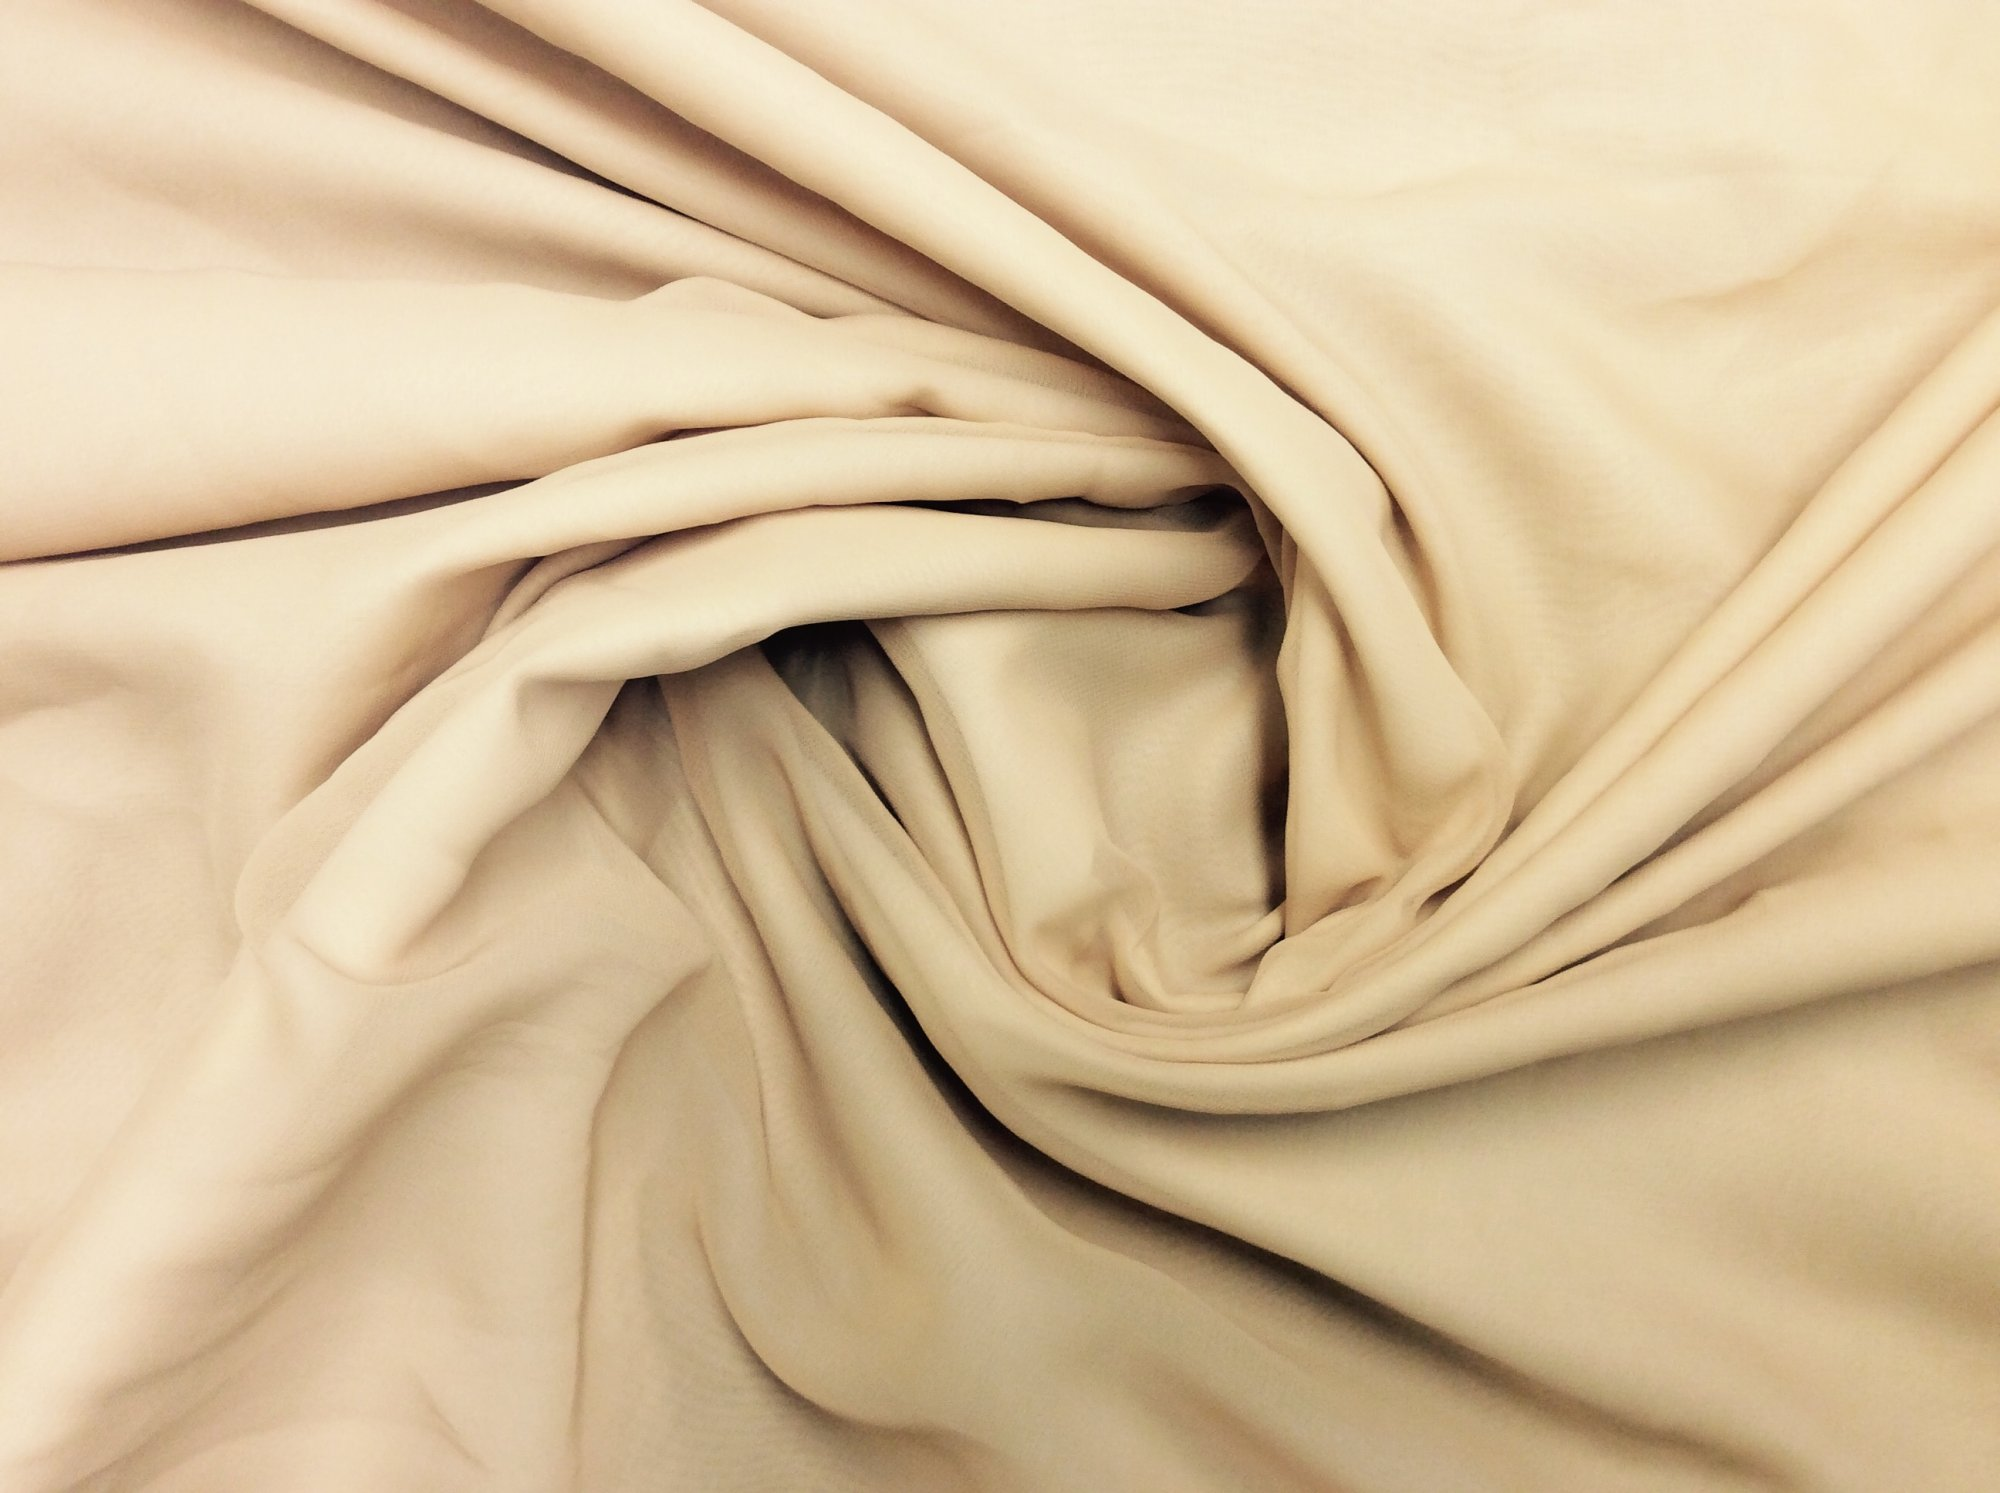 Tan Polyester Chiffon Apparel Sheer Dress Fabric FM99